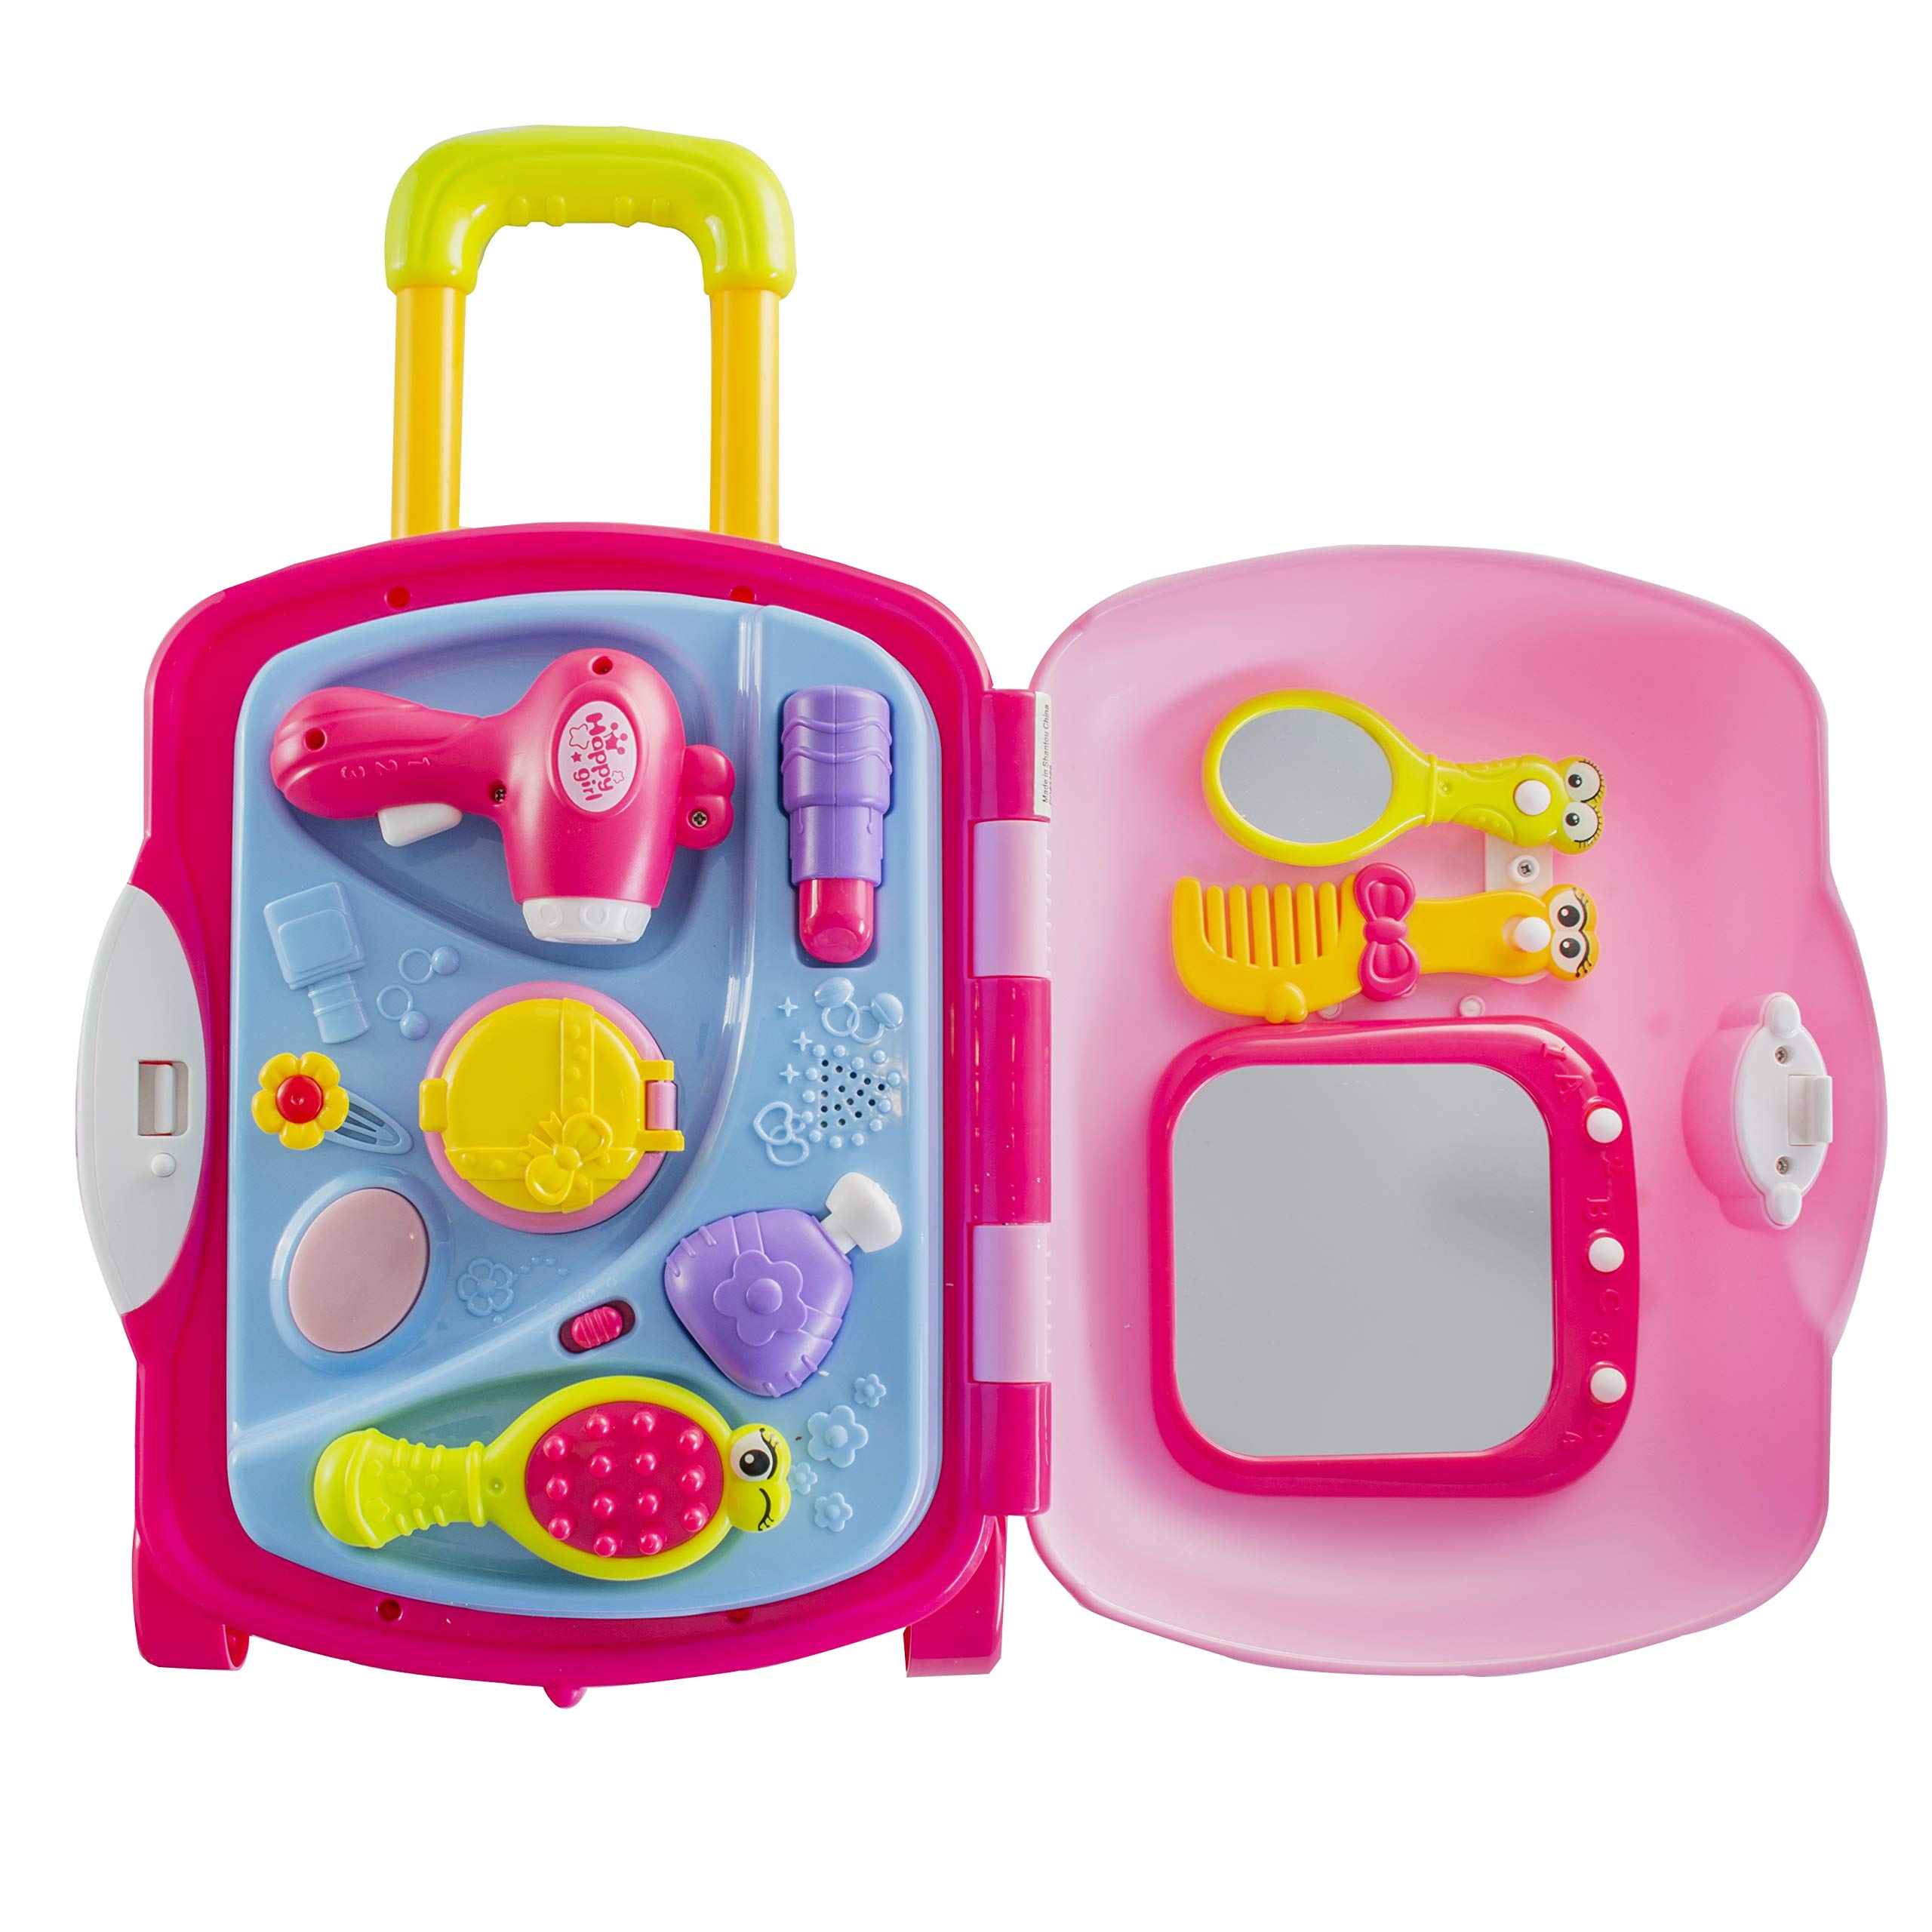 Pretend Play Girls Kids Beauty Salon Set with Realistic Mirror and Accesories Play Set with Fashion & Makeup Accessories for Girls by Prextex (Image #3)